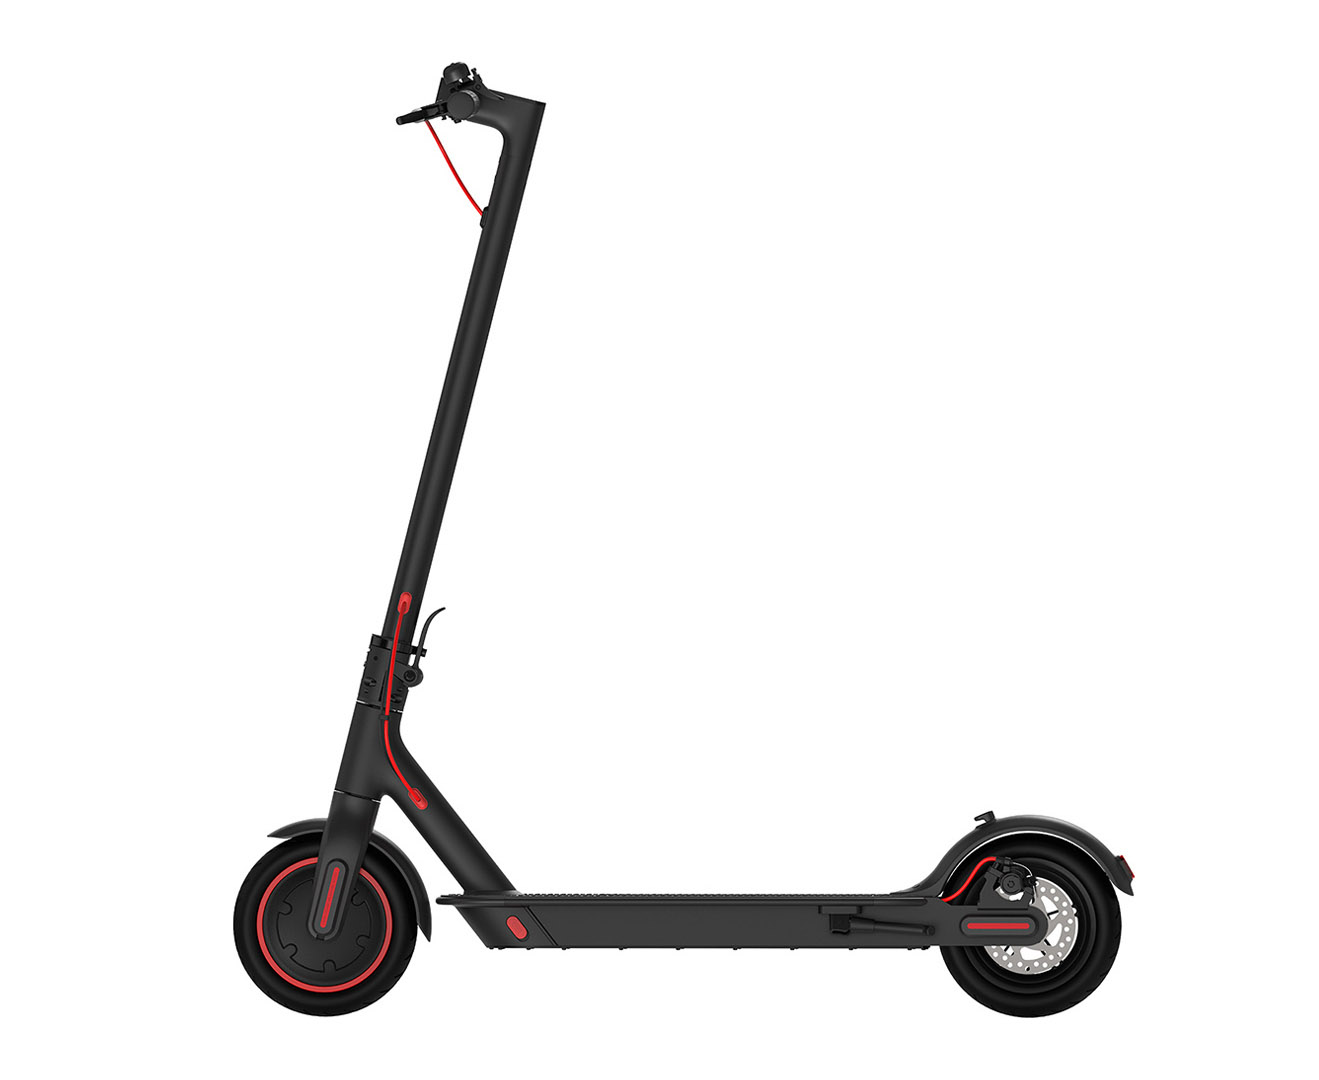 Xiaomi Mi Electric Scooter Pro Black Πληρωμή έως 24 δόσεις*